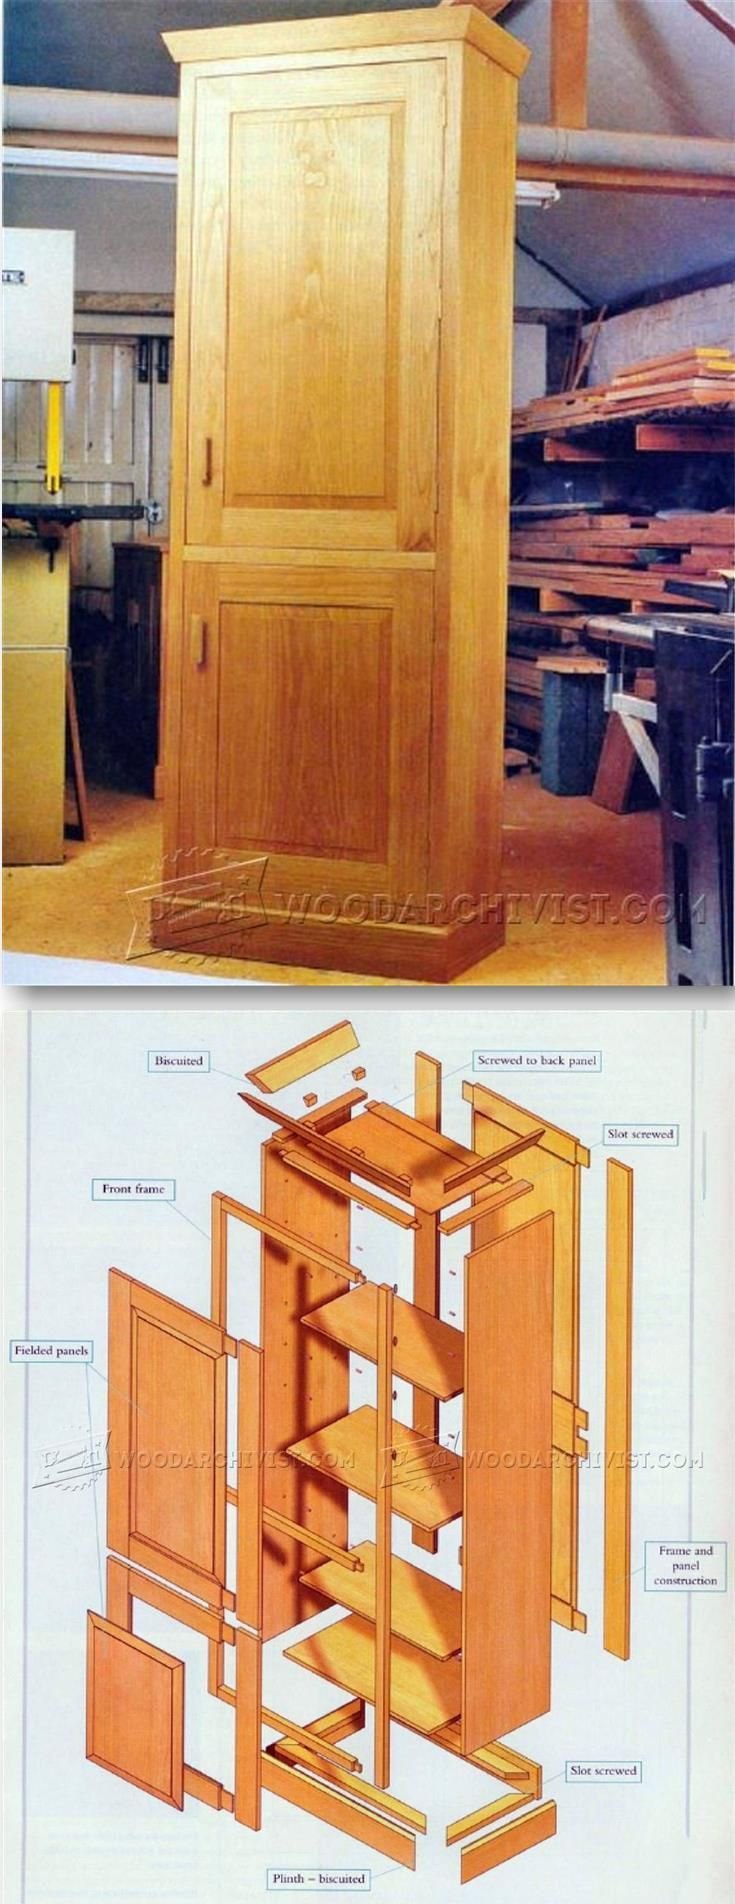 Tall Cabinet Plans   Furniture Plans and Projects   WoodArchivist com. 1351 best Woodworking projects images on Pinterest   Furniture